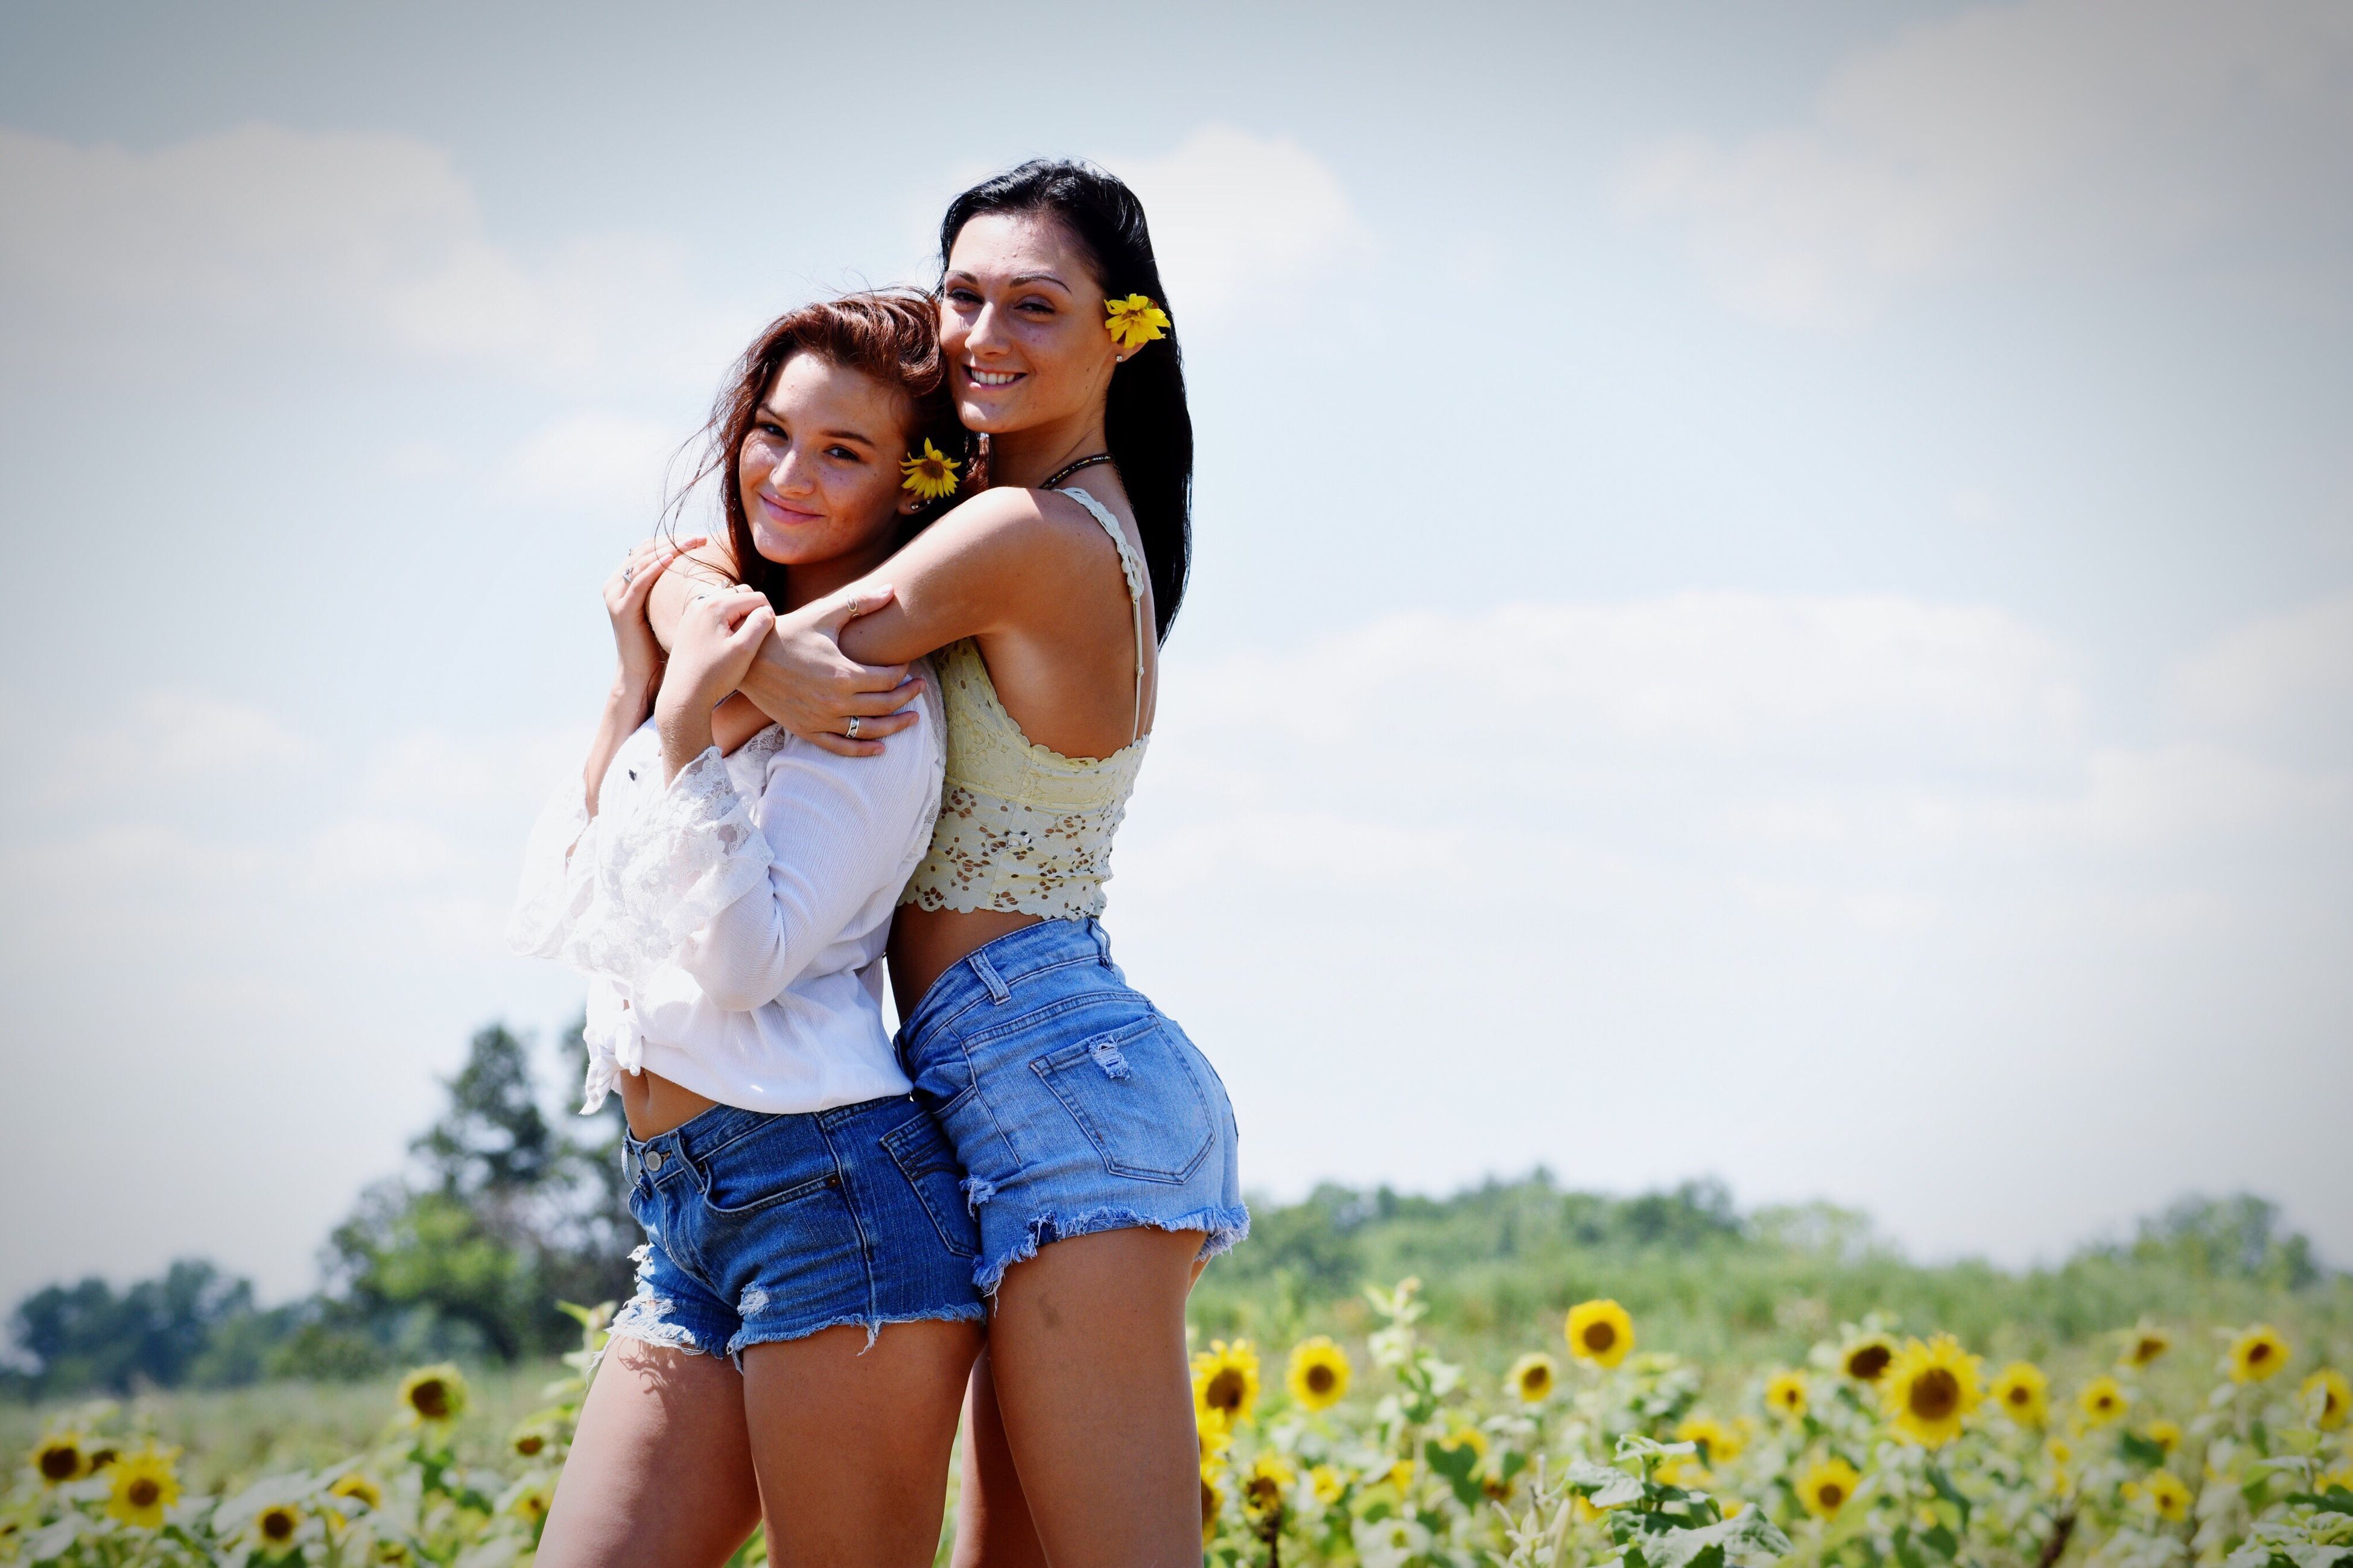 three quarter length, sky, leisure activity, real people, young women, young adult, togetherness, casual clothing, nature, lifestyles, hot pants, shorts, two people, love, standing, happiness, outdoors, beauty in nature, field, cloud - sky, day, landscape, front view, smiling, bonding, grass, vacations, piggyback, beautiful woman